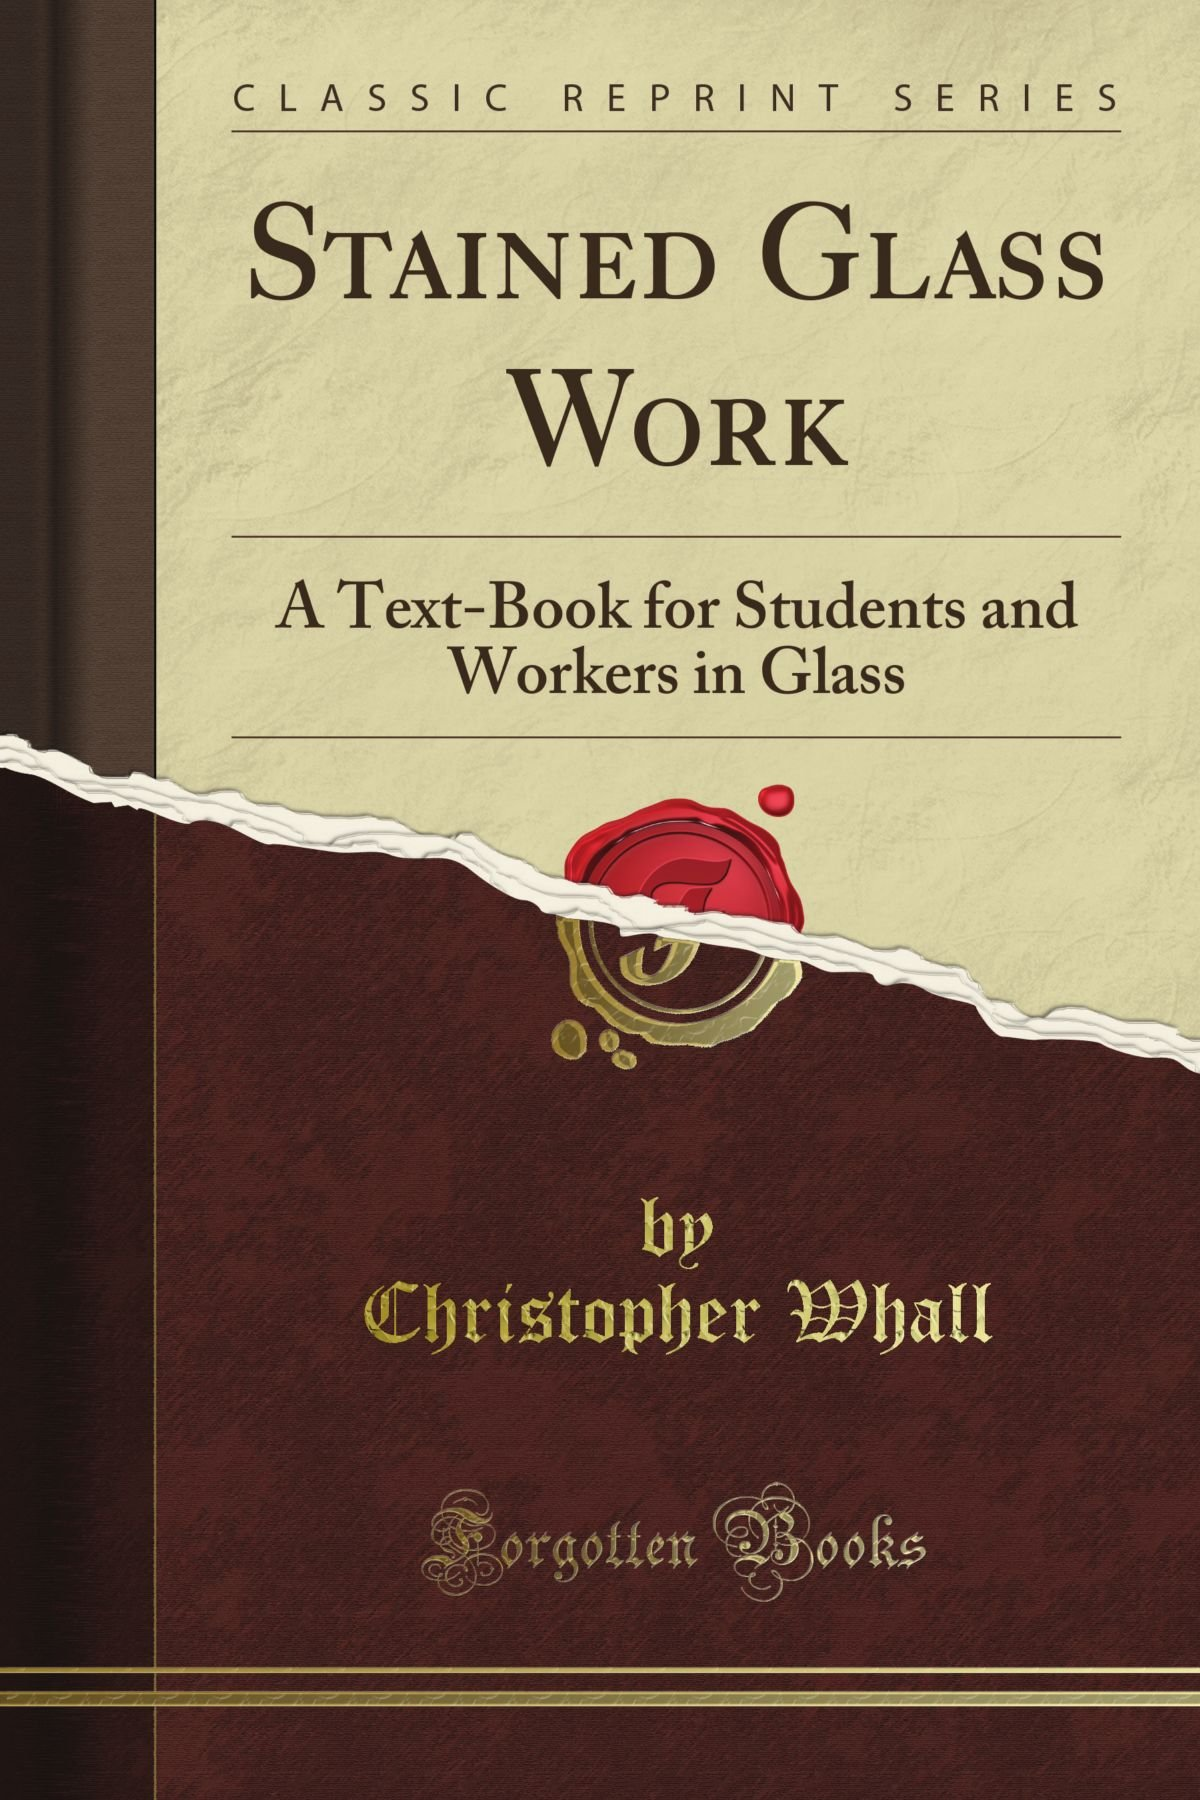 Stained Glass Work: A Text-Book for Students and Workers in Glass (Classic Reprint)